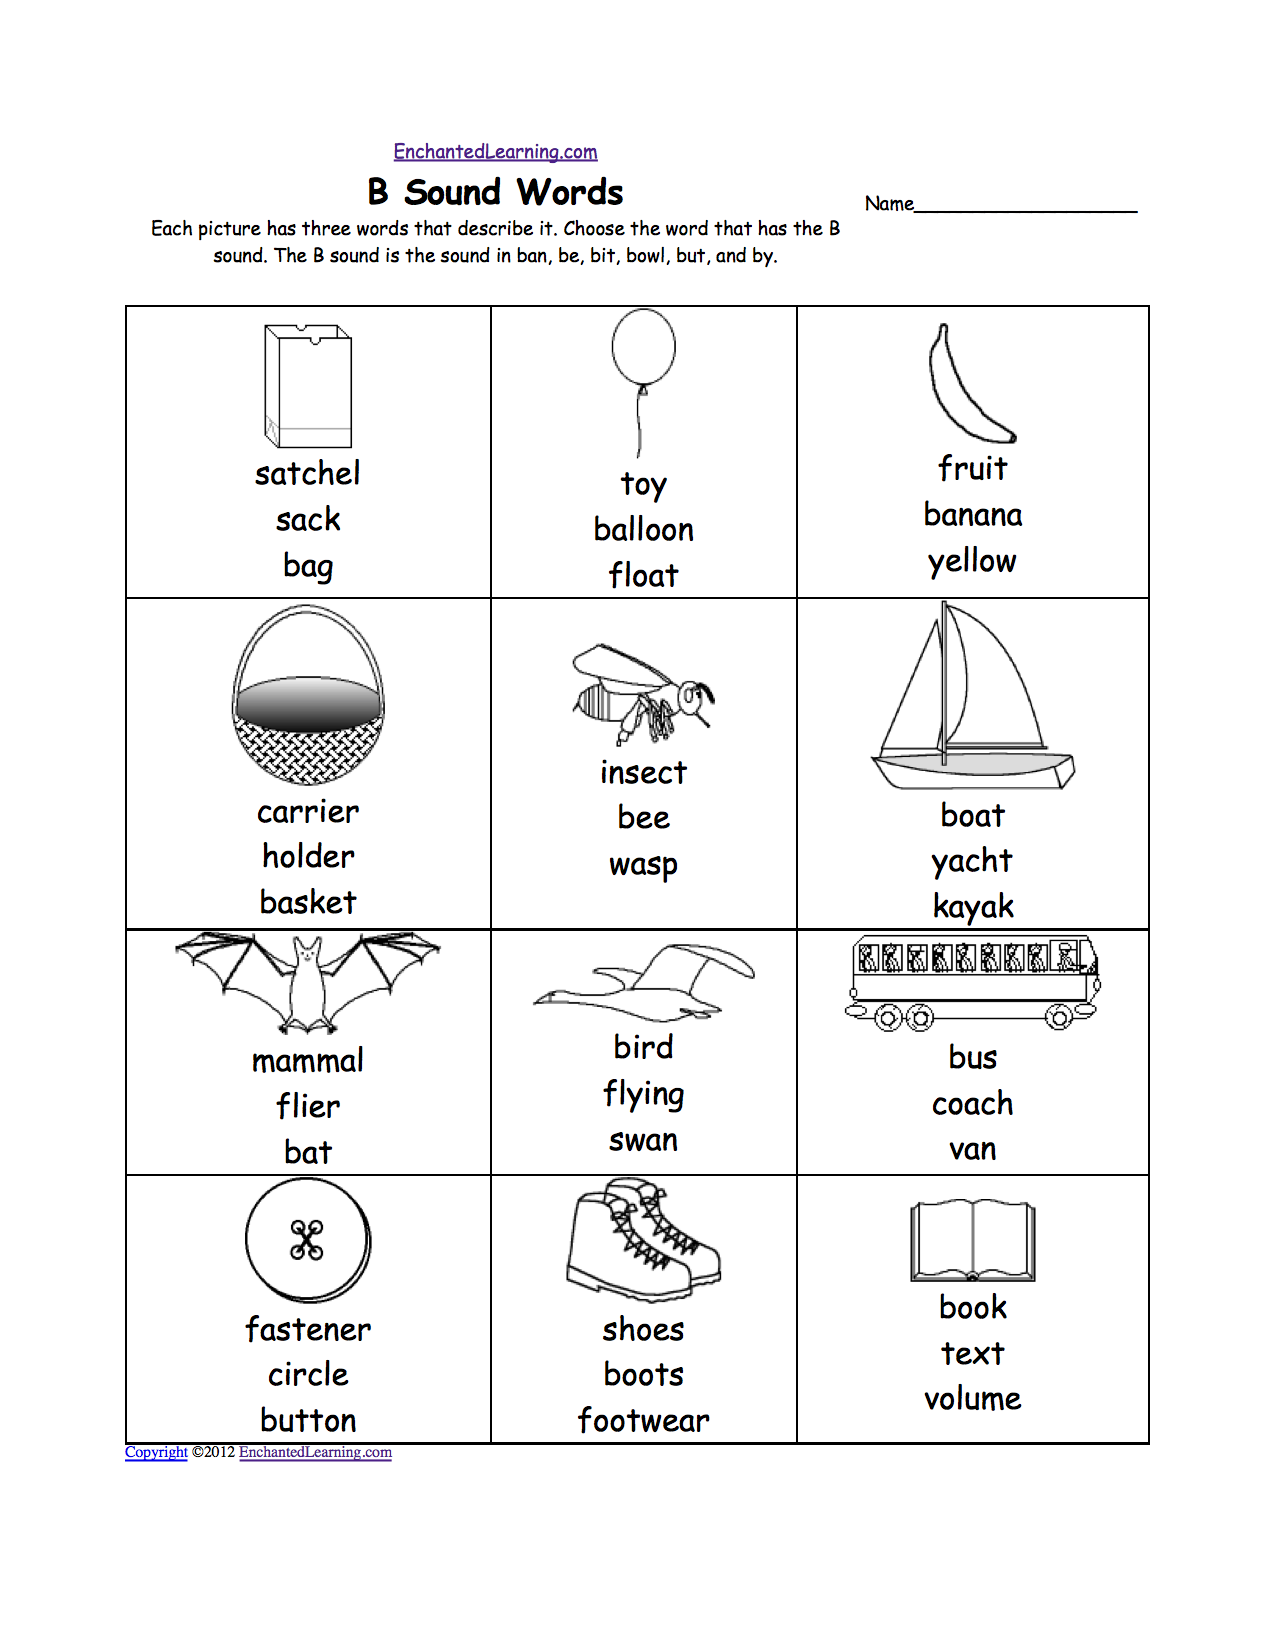 Weirdmailus  Surprising Phonics Worksheets Multiple Choice Worksheets To Print  With Magnificent Quotbquot Sound Phonics Worksheet Multiple Choice Each Picture Has Three Words That Describe It Choose The Word That Has A Quotbquot Sound The Quotbquot Sound Is The Sound  With Agreeable Possessives And Plurals Worksheet Also Algebra Maths Worksheets In Addition Tally Practice Worksheet And Helping Verbs Worksheet Middle School As Well As Math Worksheets For  Graders Additionally Finding Missing Angles In Quadrilaterals Worksheet From Enchantedlearningcom With Weirdmailus  Magnificent Phonics Worksheets Multiple Choice Worksheets To Print  With Agreeable Quotbquot Sound Phonics Worksheet Multiple Choice Each Picture Has Three Words That Describe It Choose The Word That Has A Quotbquot Sound The Quotbquot Sound Is The Sound  And Surprising Possessives And Plurals Worksheet Also Algebra Maths Worksheets In Addition Tally Practice Worksheet From Enchantedlearningcom